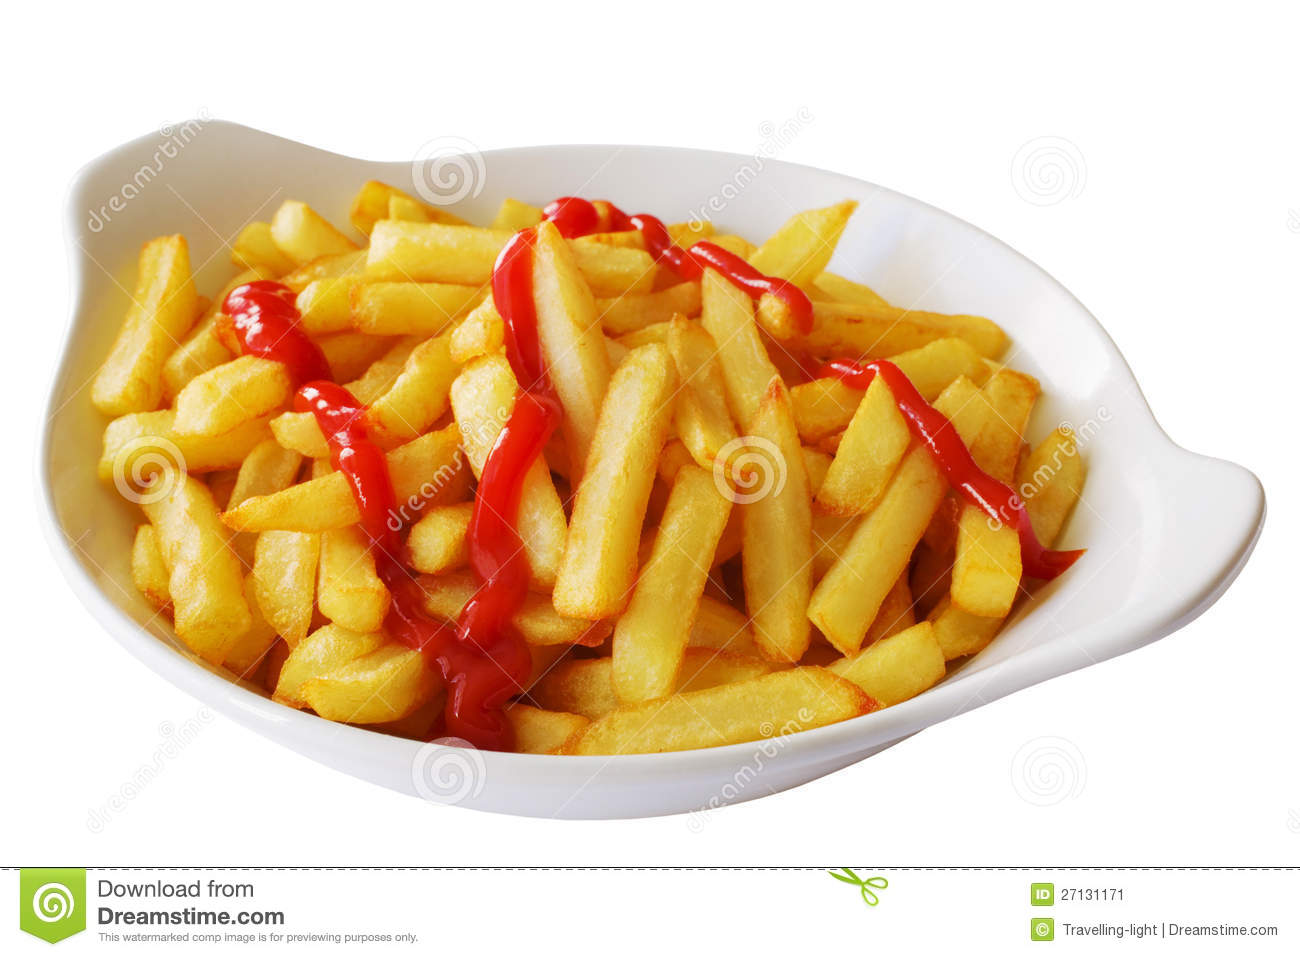 French Fries With Tomato Ketchup Stock Image - Image: 27131171